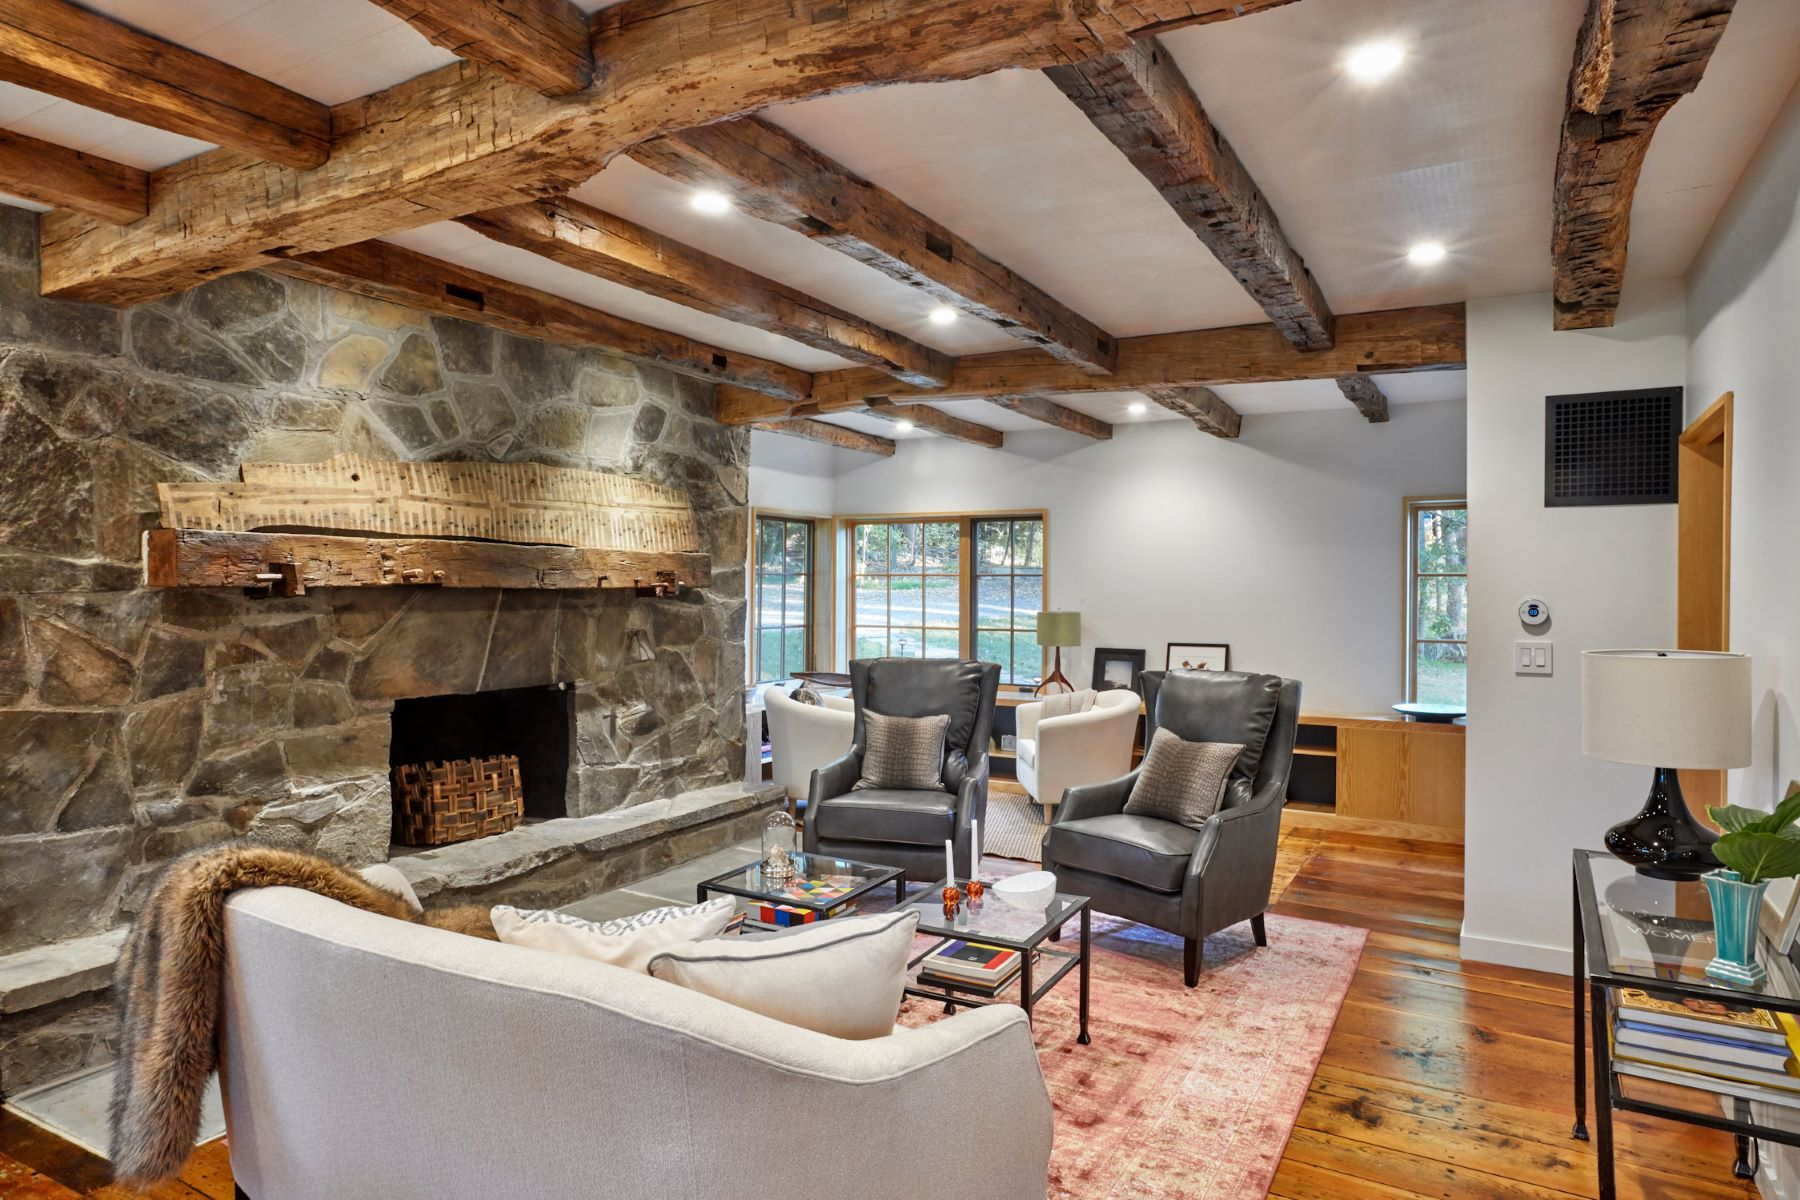 Additional photo for property listing at Modern Farmhouse 205 E Fallkill Rd Clinton Corners, New York 12514 United States